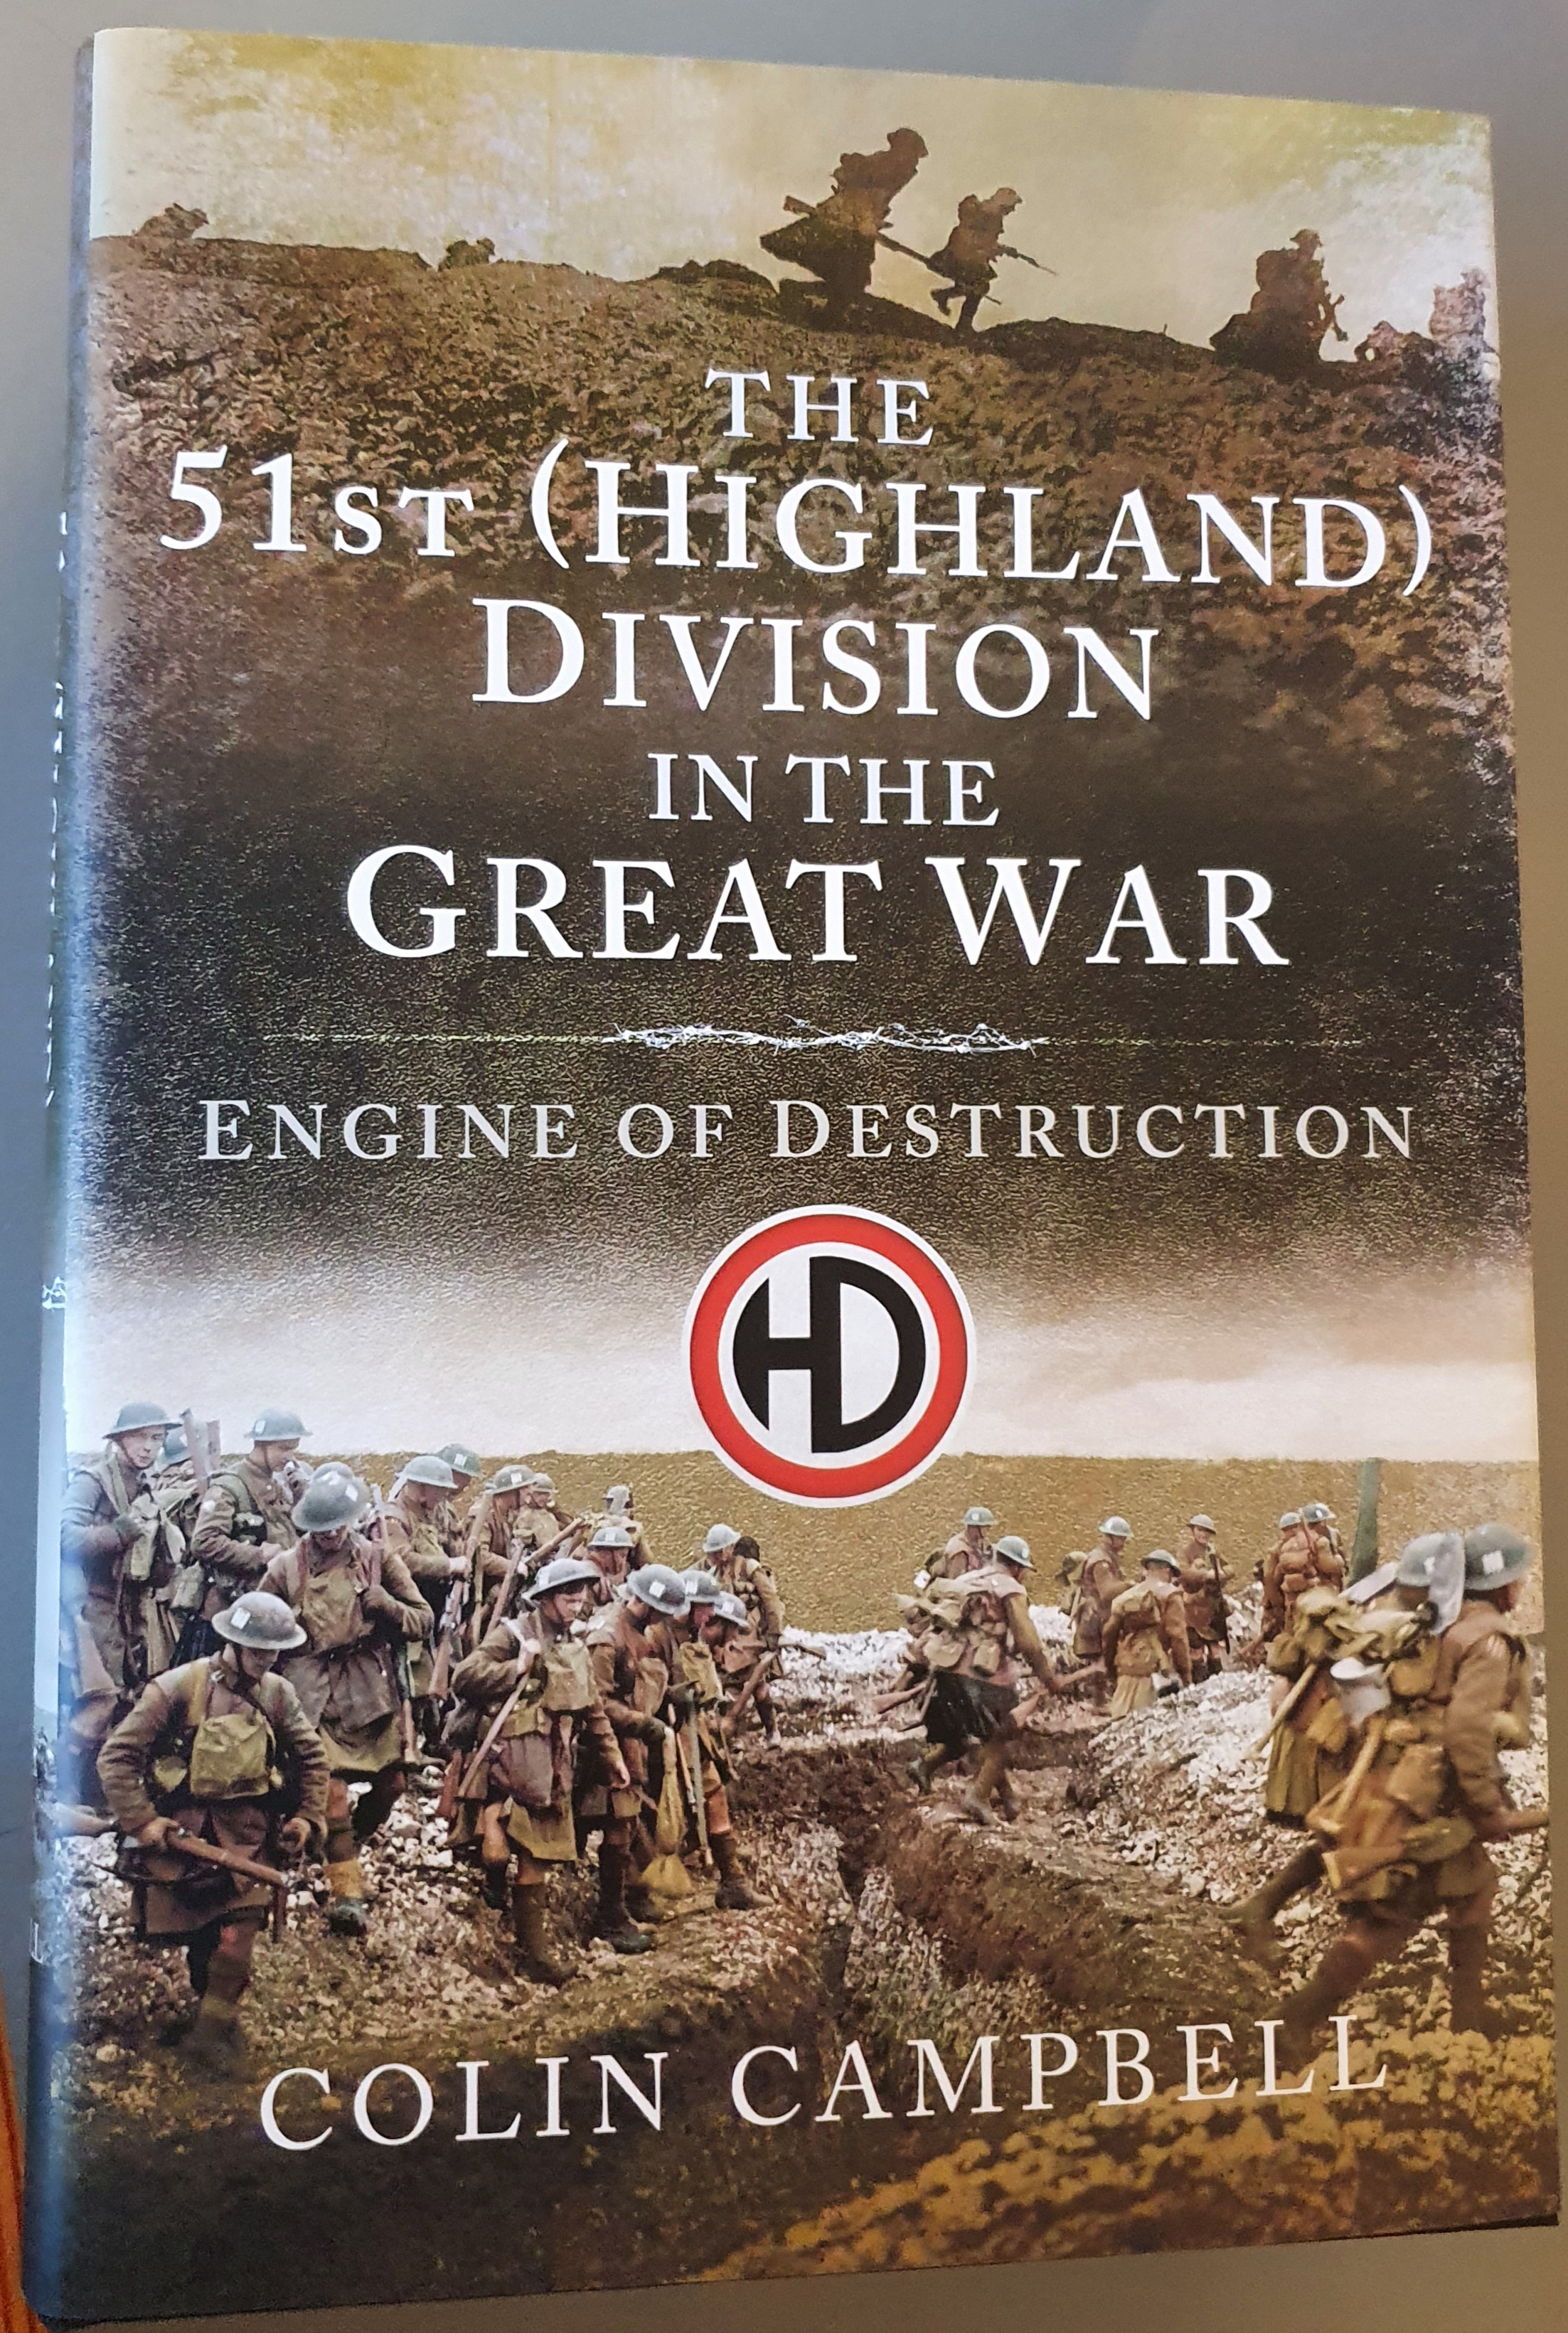 The 51st Highland Division in the Great War